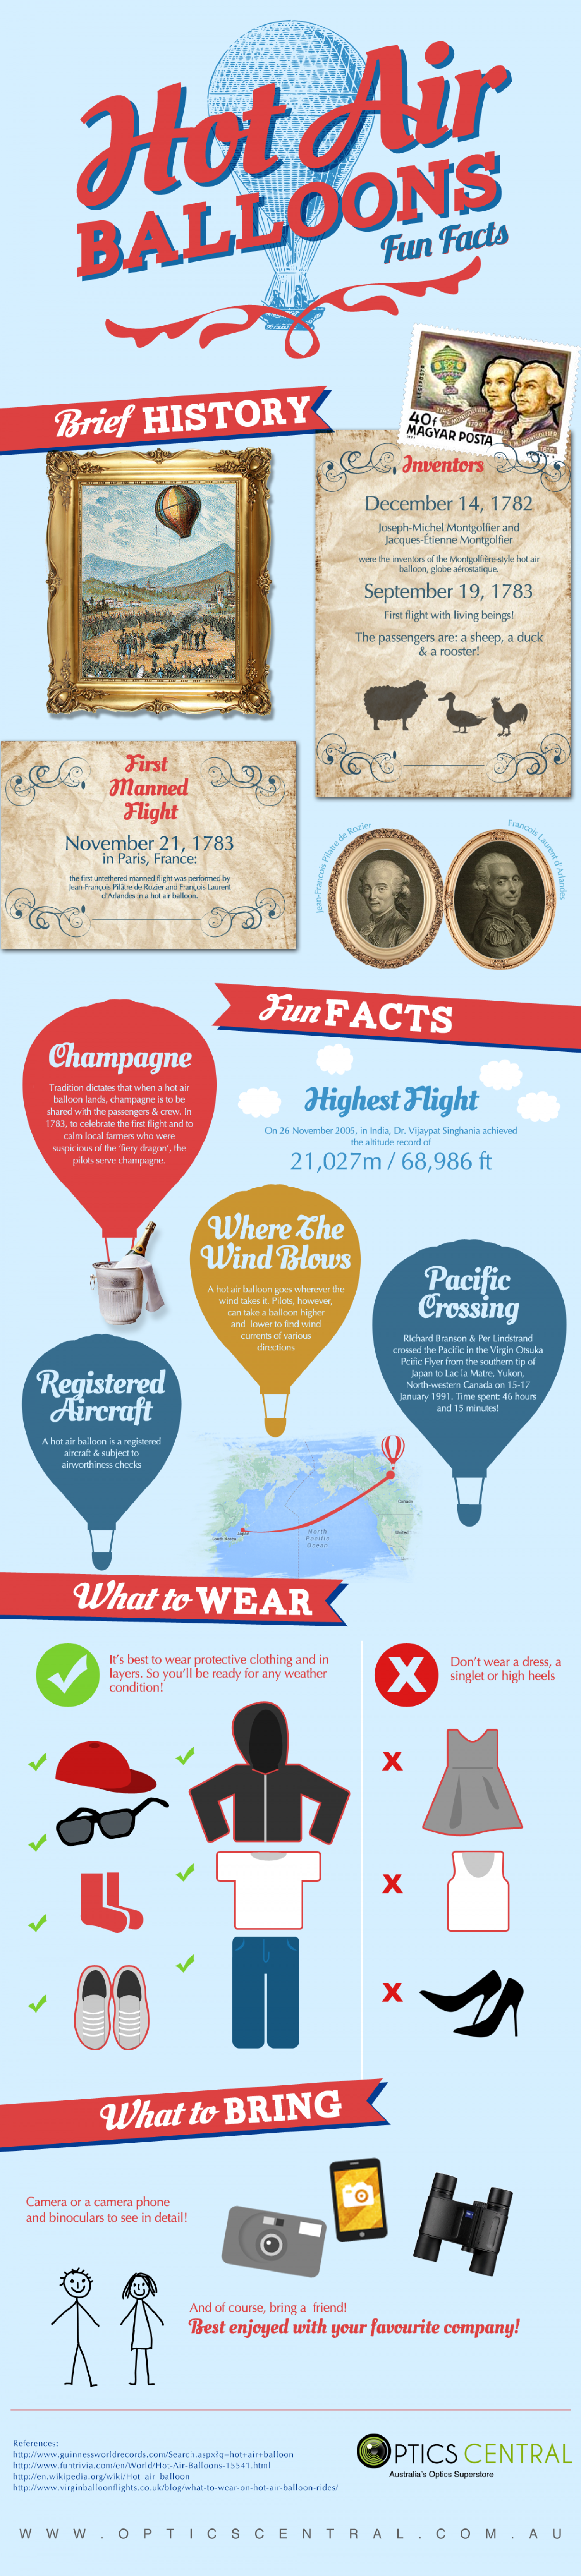 Hot Air Balloons Fun Facts Infographic